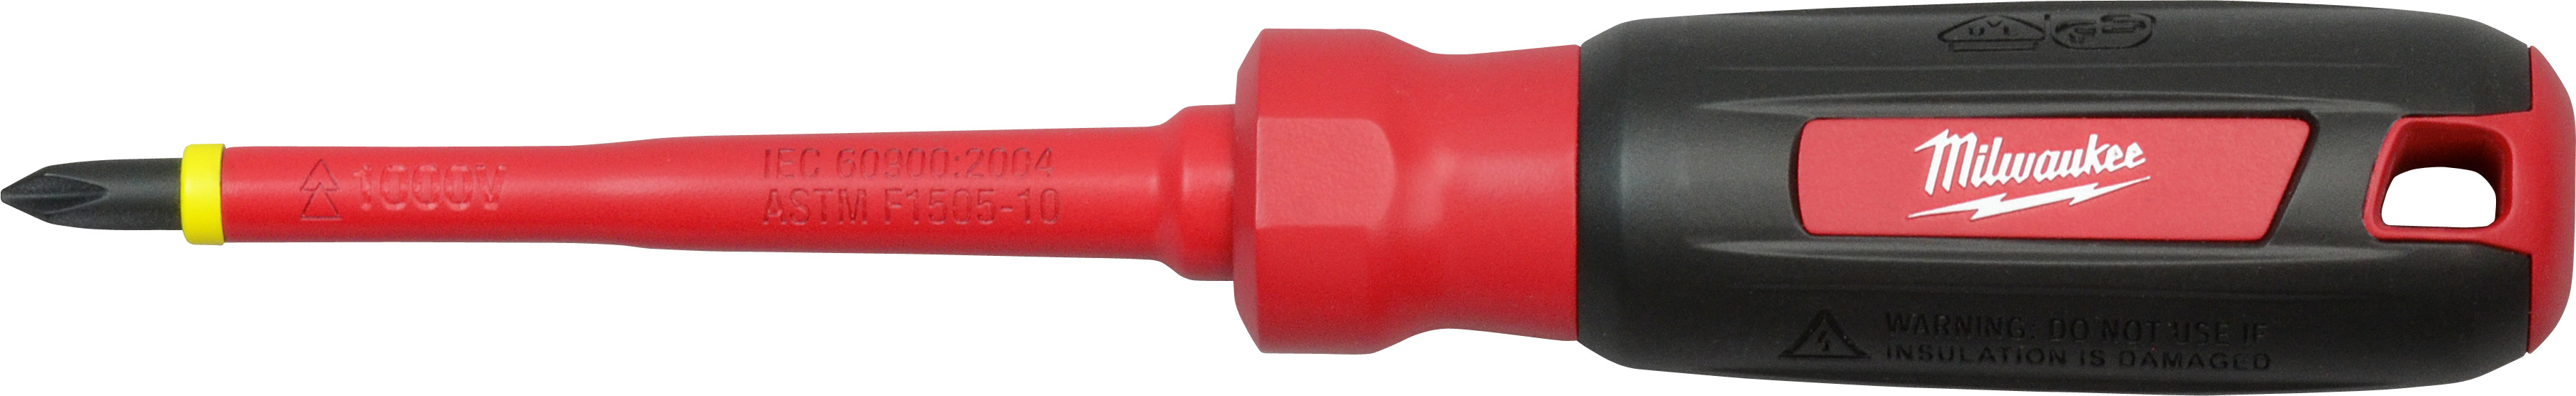 "Milwaukee 48-22-2212 #2 Phillips - 4"" 1000 V Insulated Screwdriver"